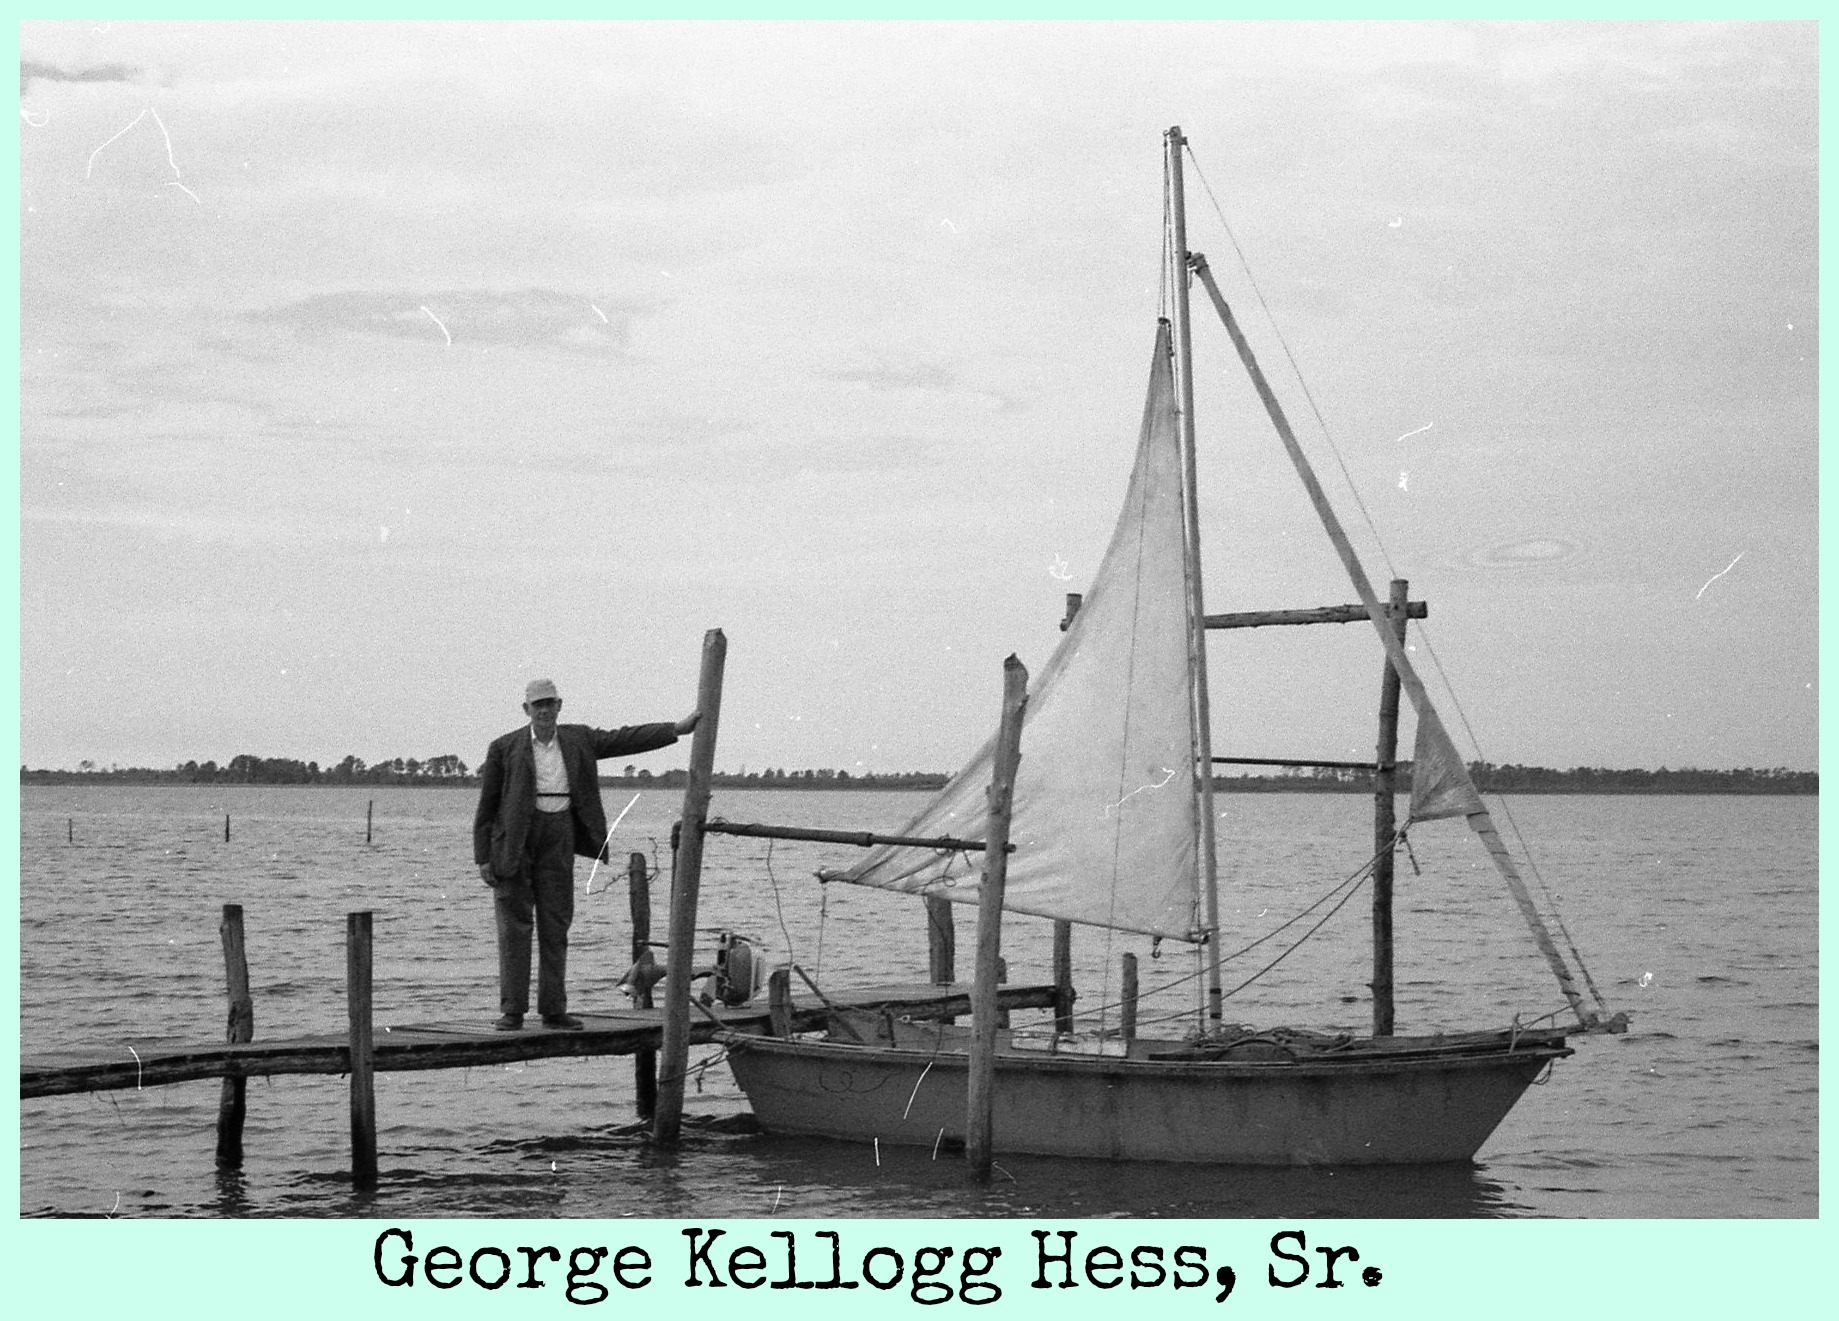 George Kellogg Hess, Sr. on dock by sailboat.jpg